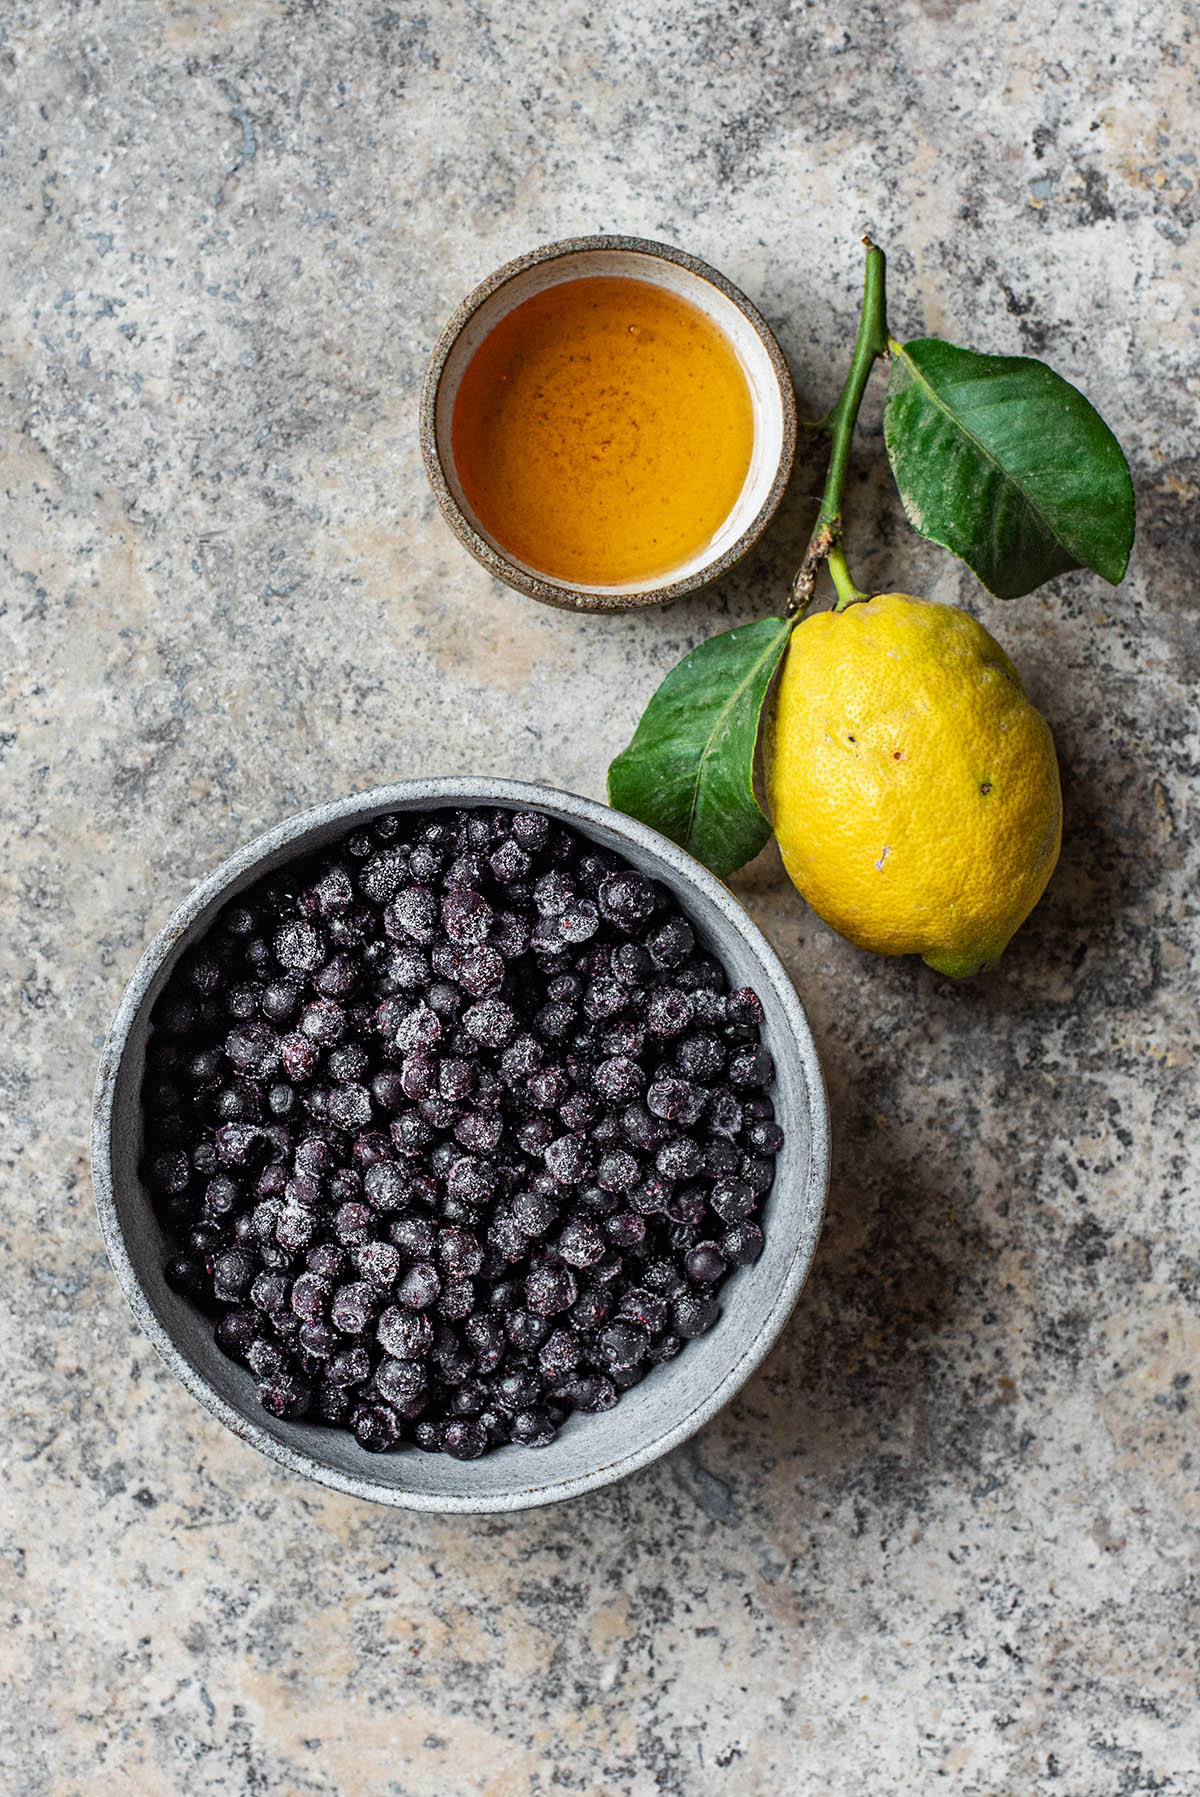 Blueberry Compote ingredients.